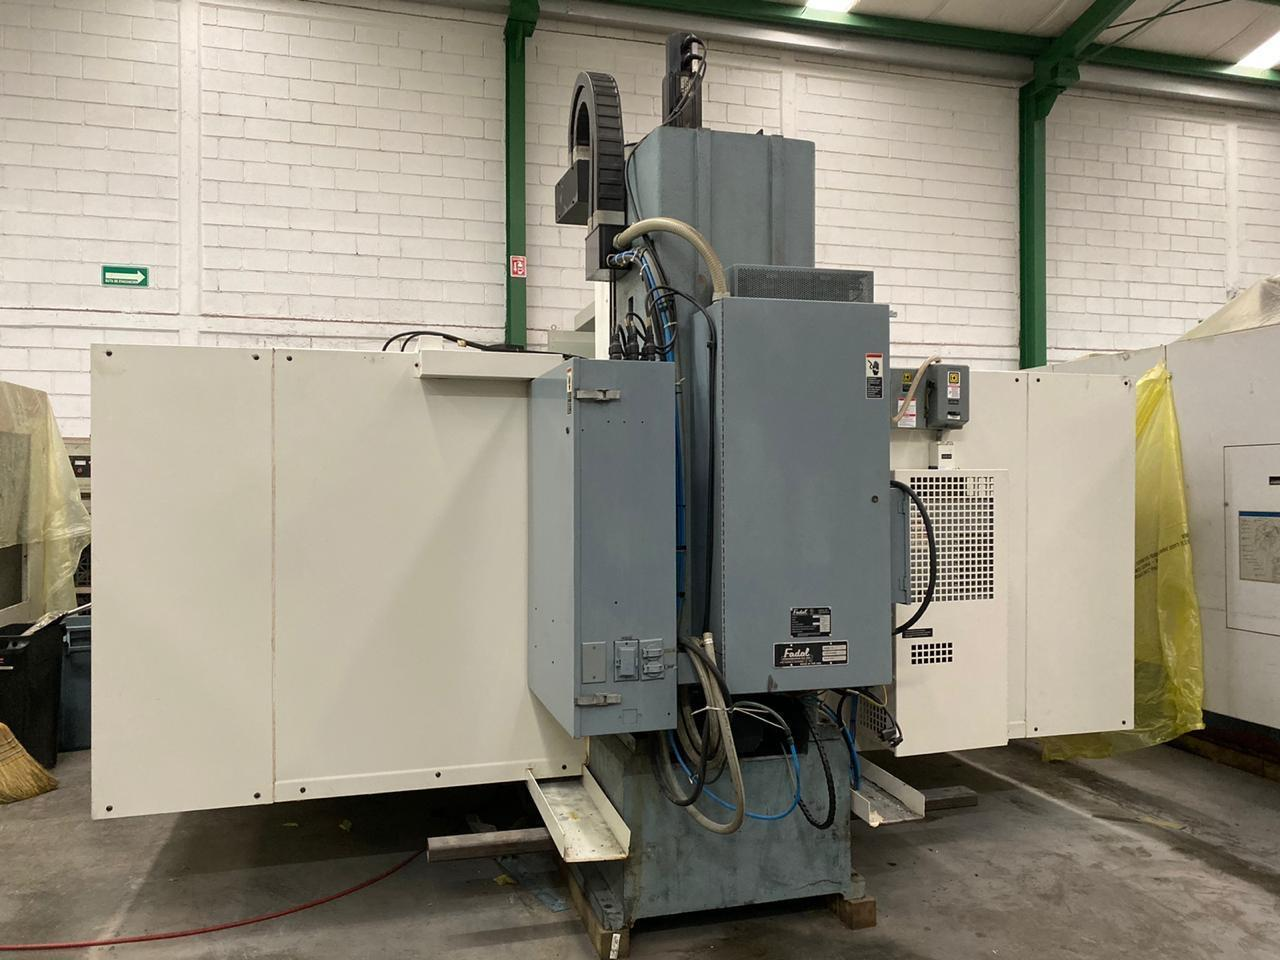 2011 FADAL VMC-6030 - Vertical Machining Center